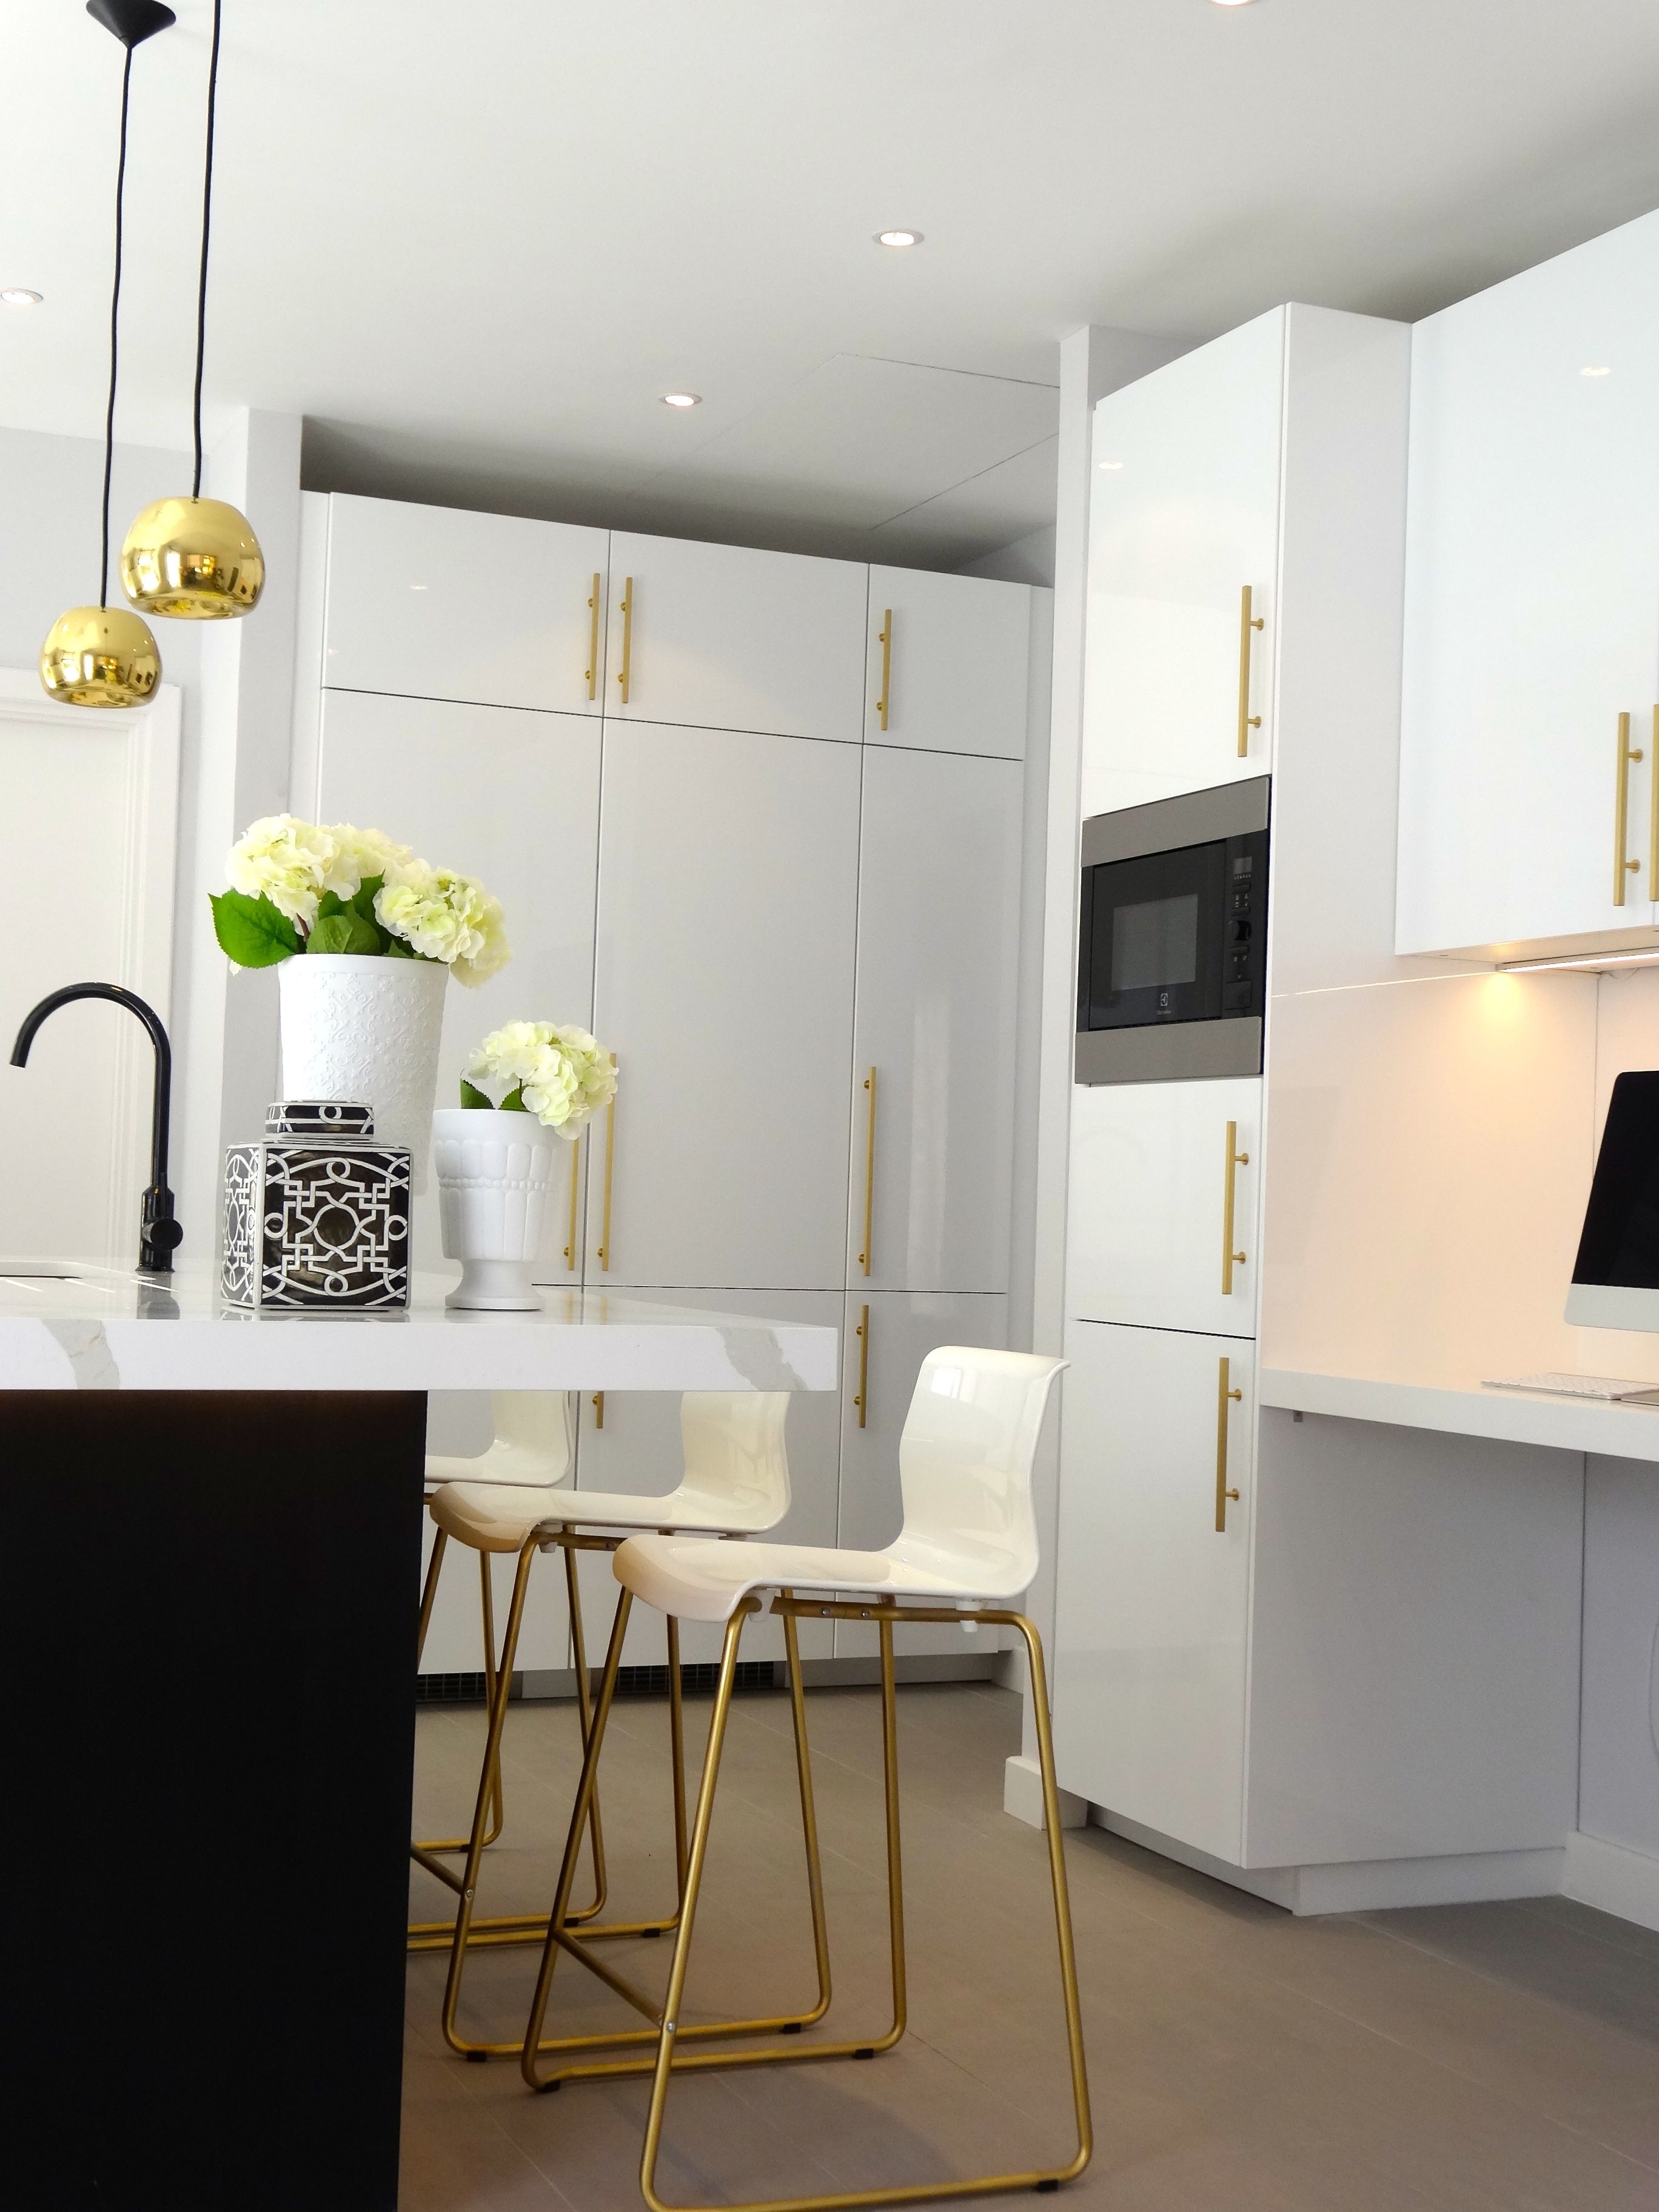 black and white kitchen accessories menards kitchens with brass gold high gloss cabinets pendant lights island greek key blinds cream bar